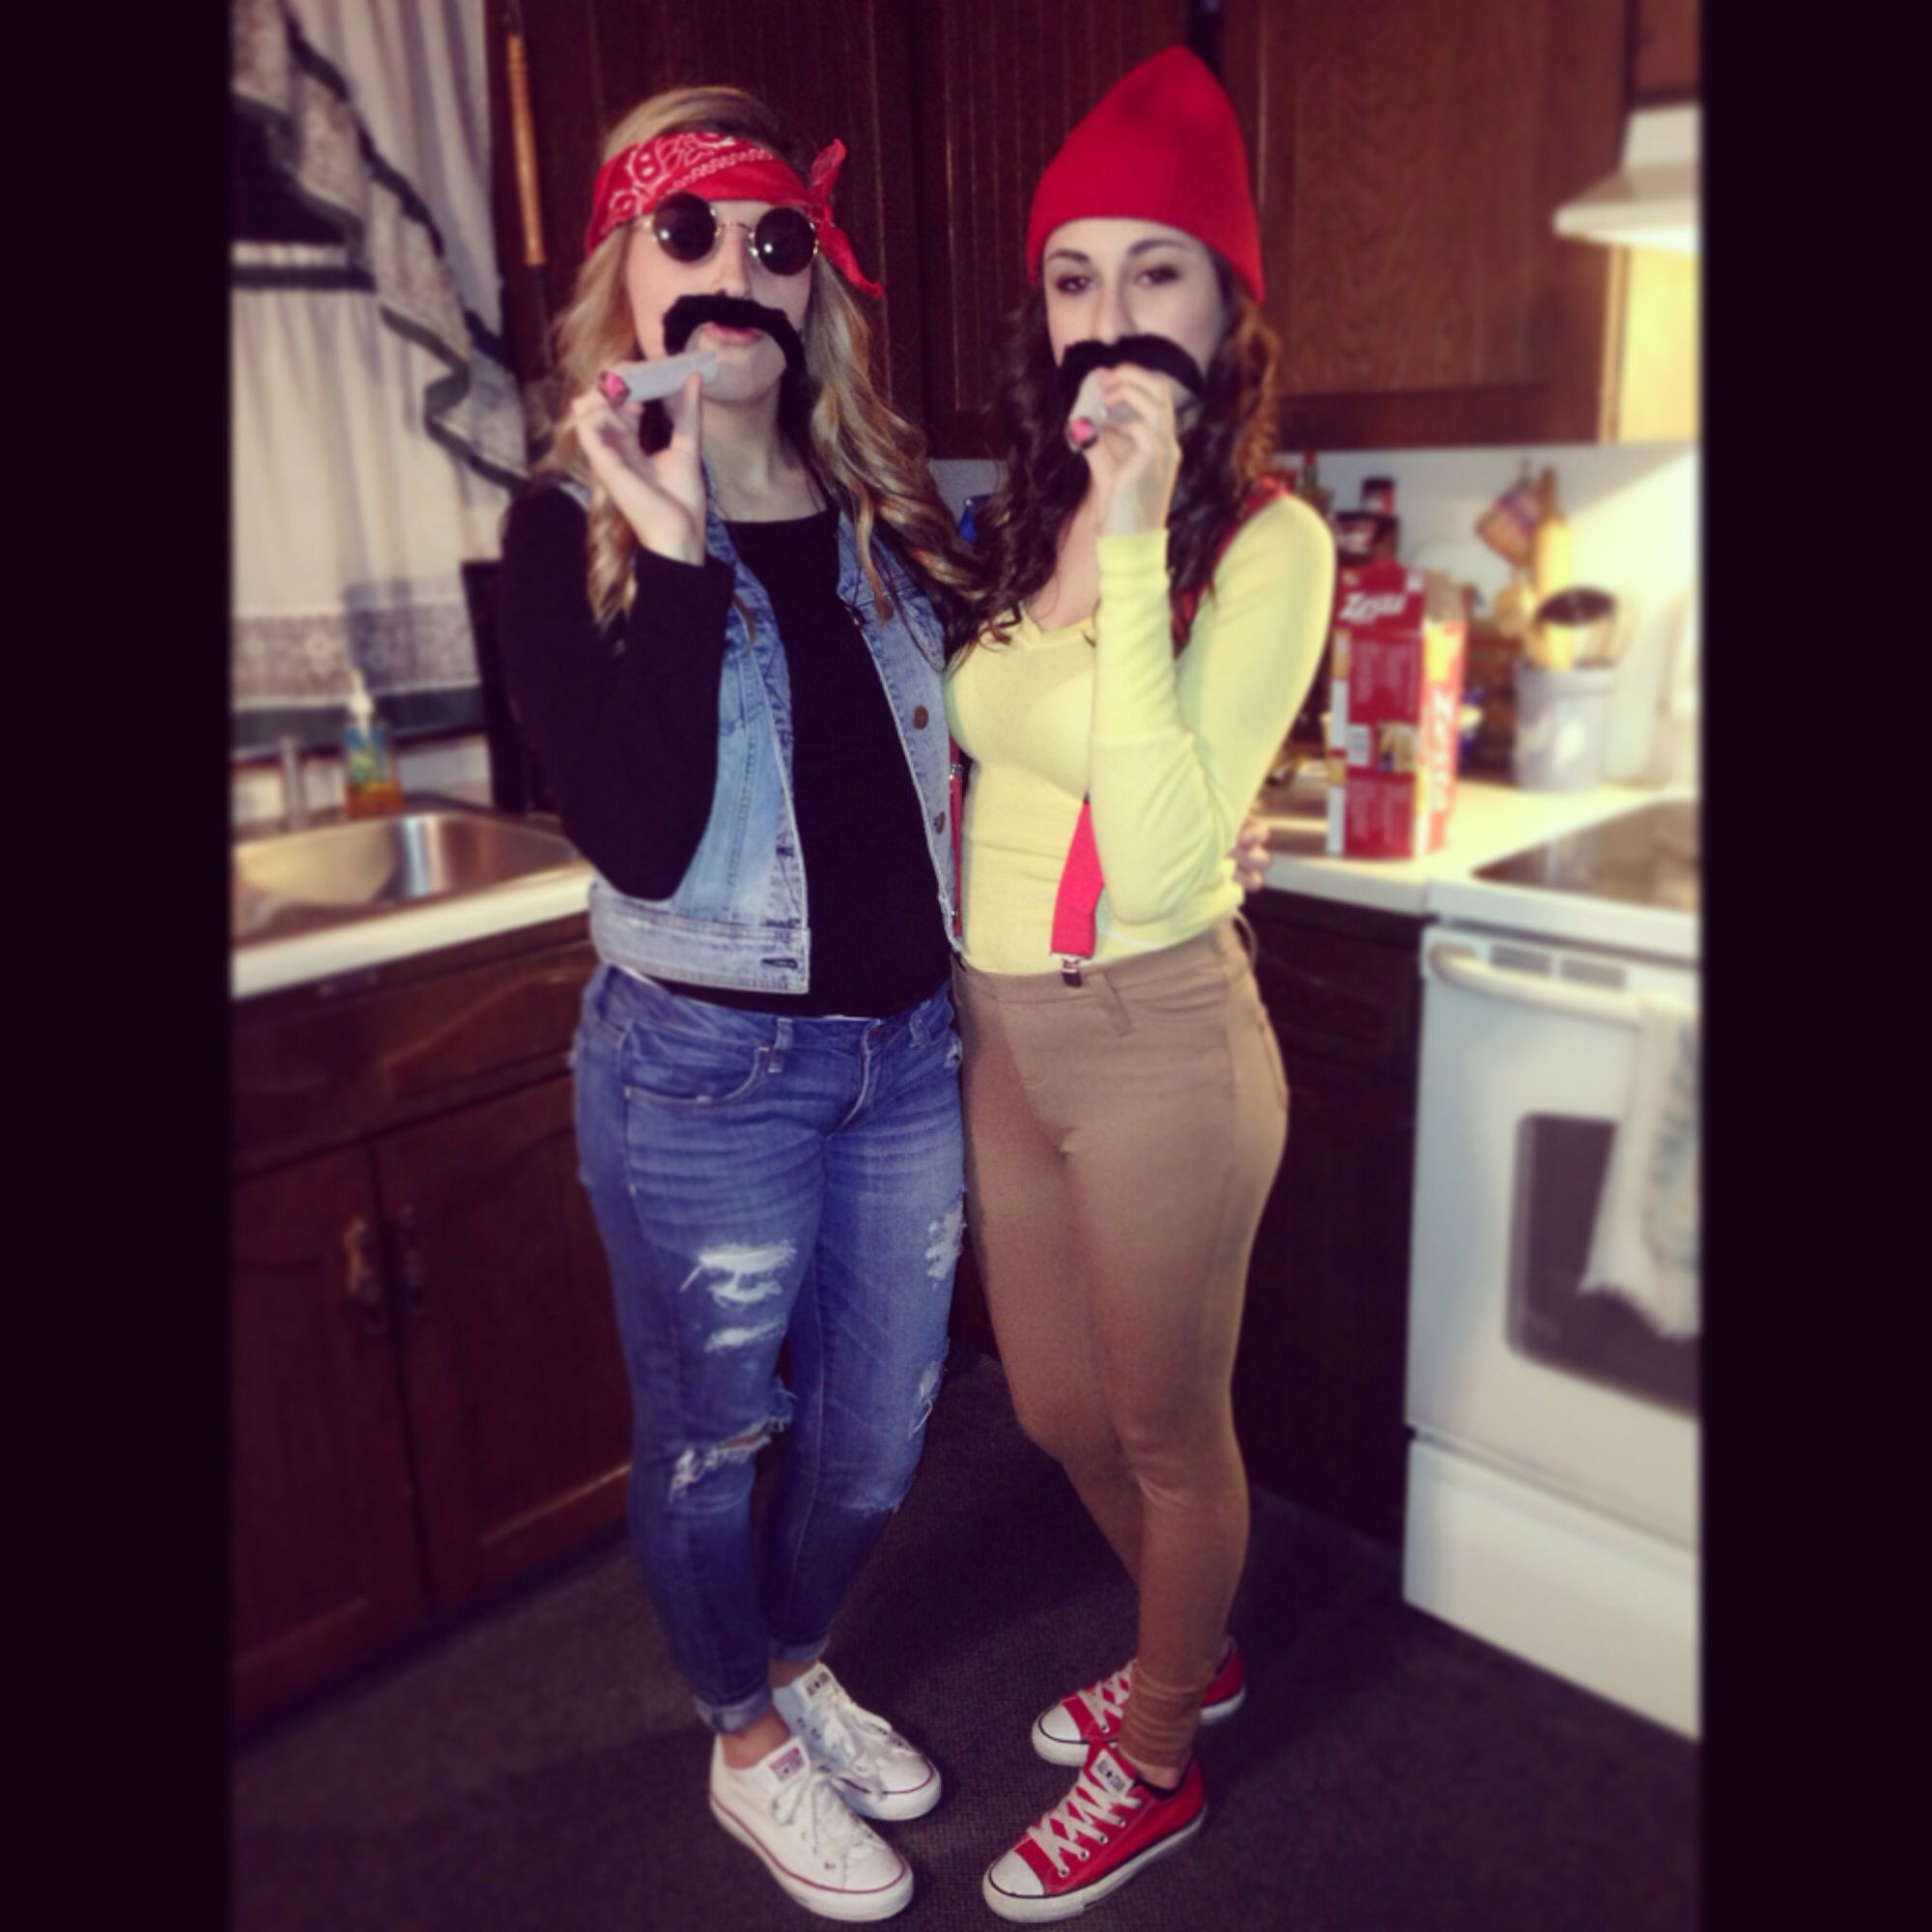 Cheech and Chong Halloween Costumes . Super easy to throw together ...